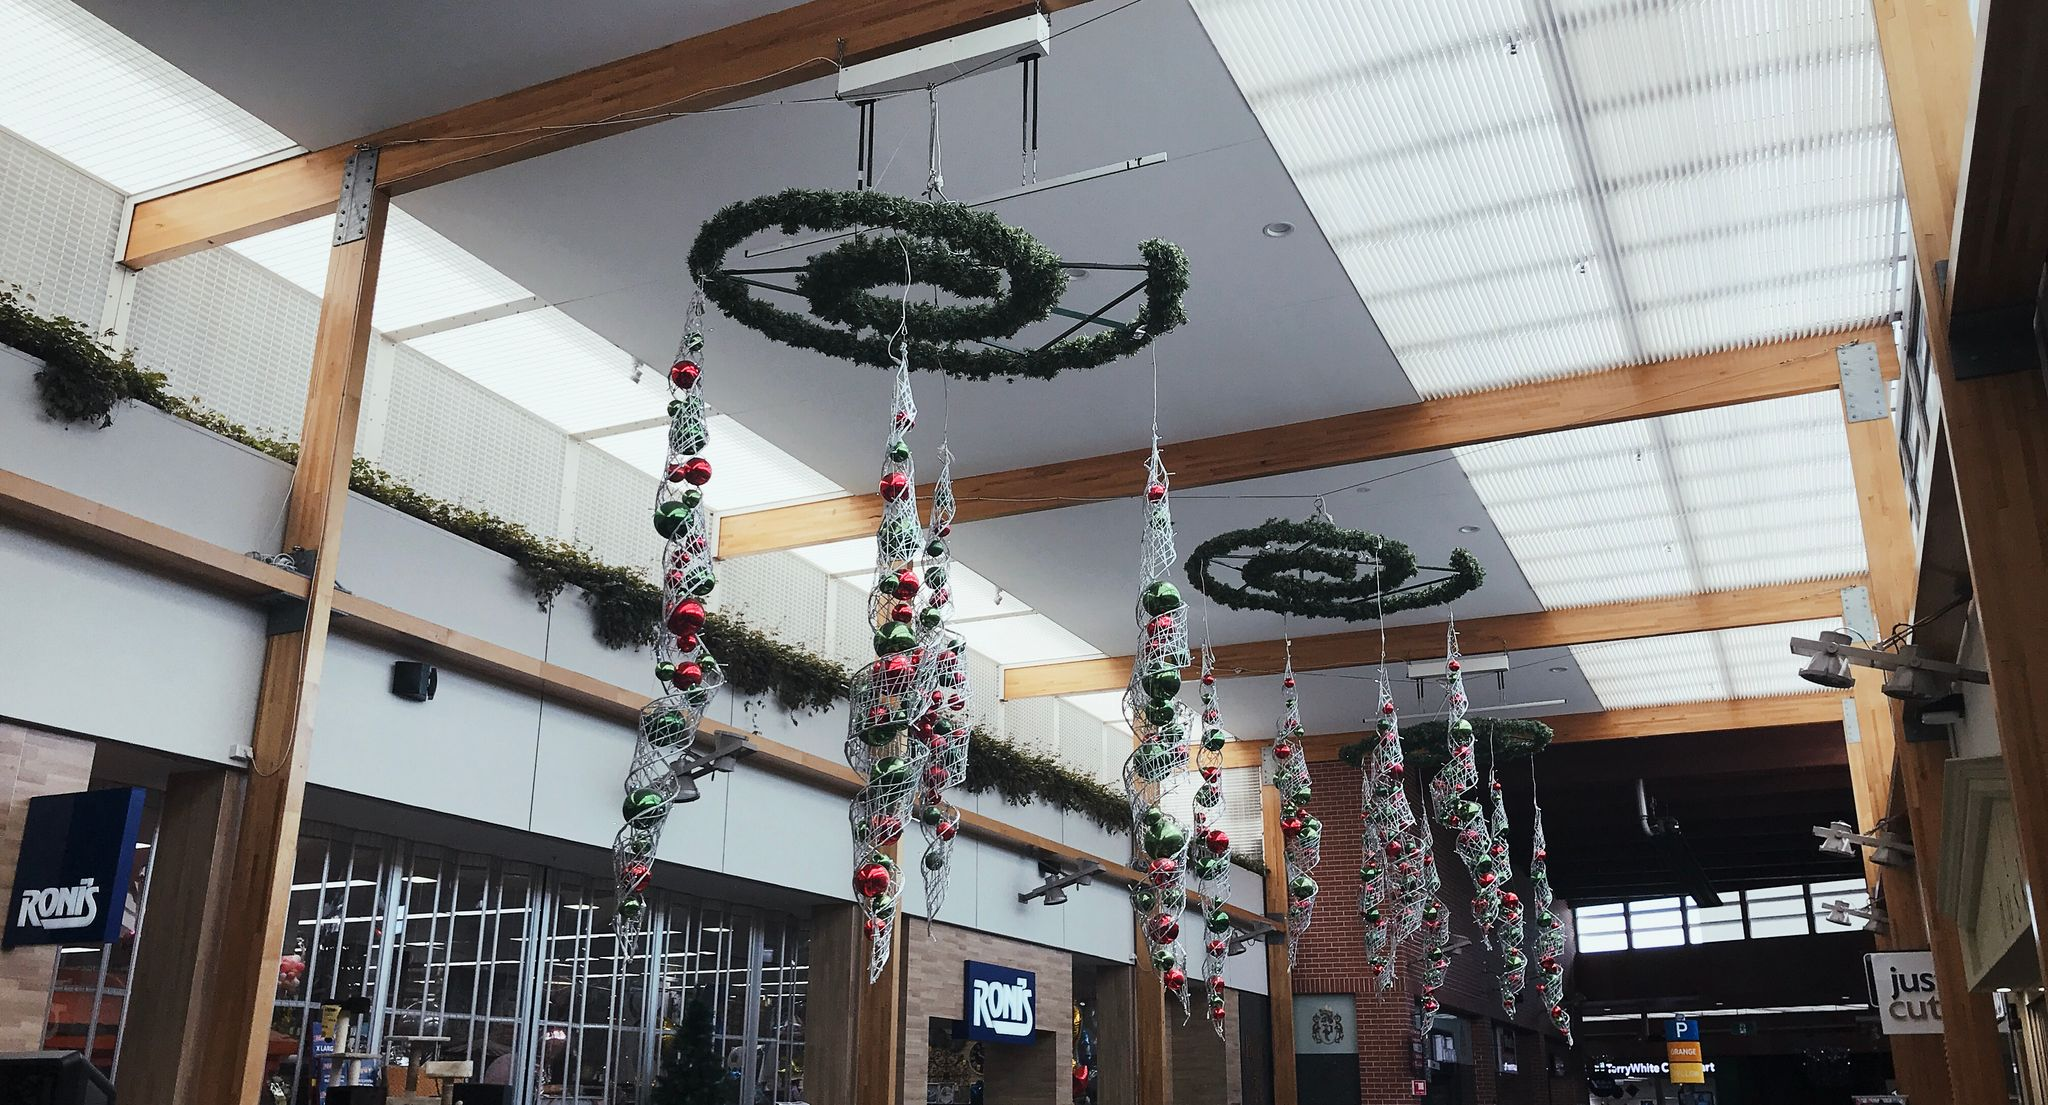 A series of very large Christmas baubles hanging from a high ceiling in a mall.